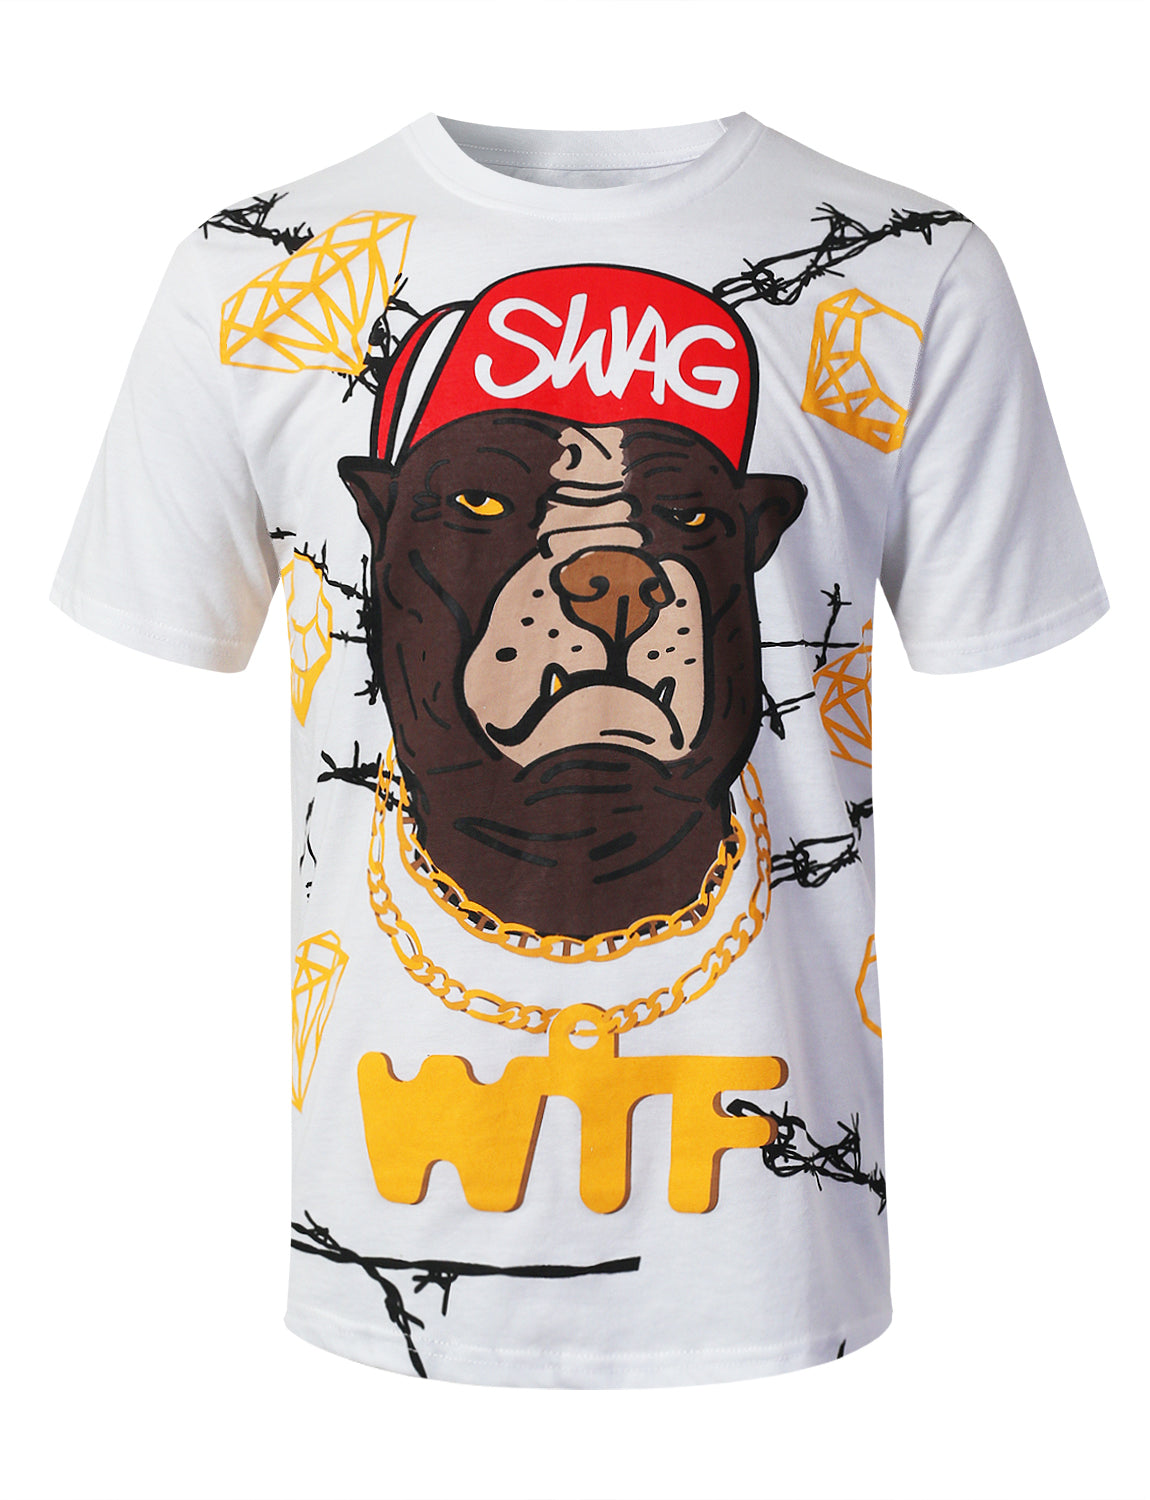 WHITE Swag Graphic Print T-shirt - URBANCREWS